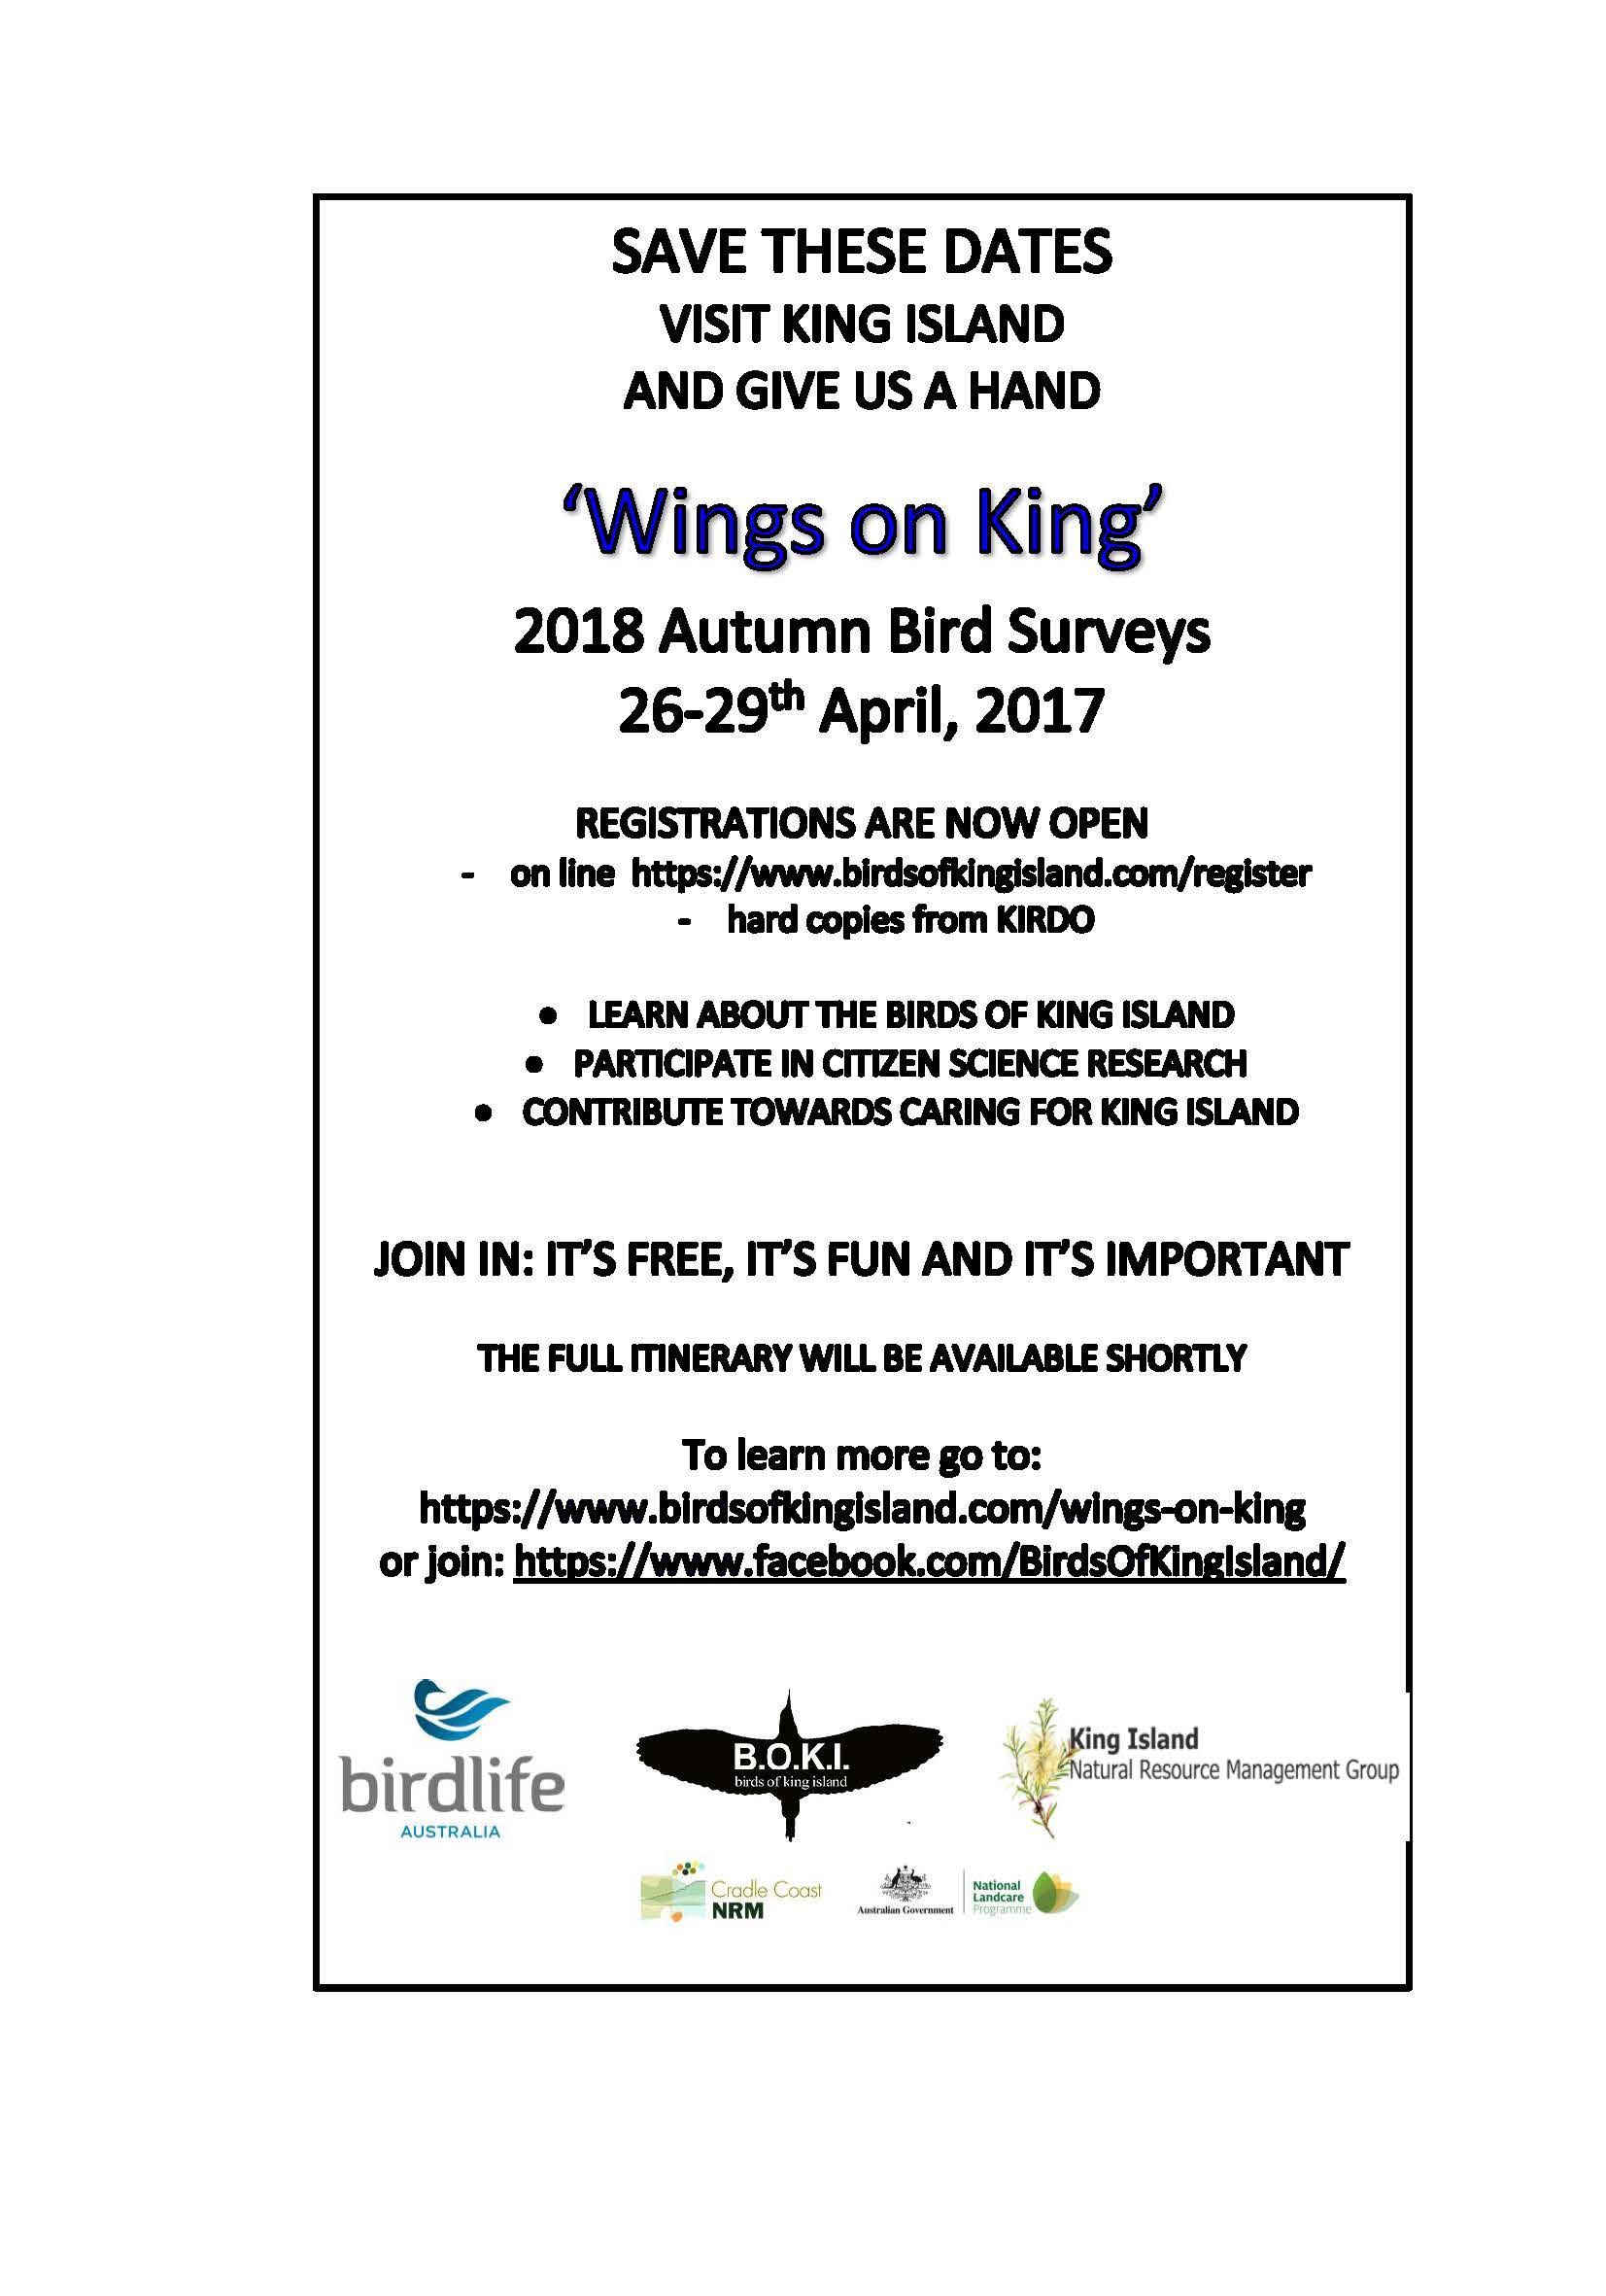 Birds_Of_King_Island_Wings_on_King.jpg